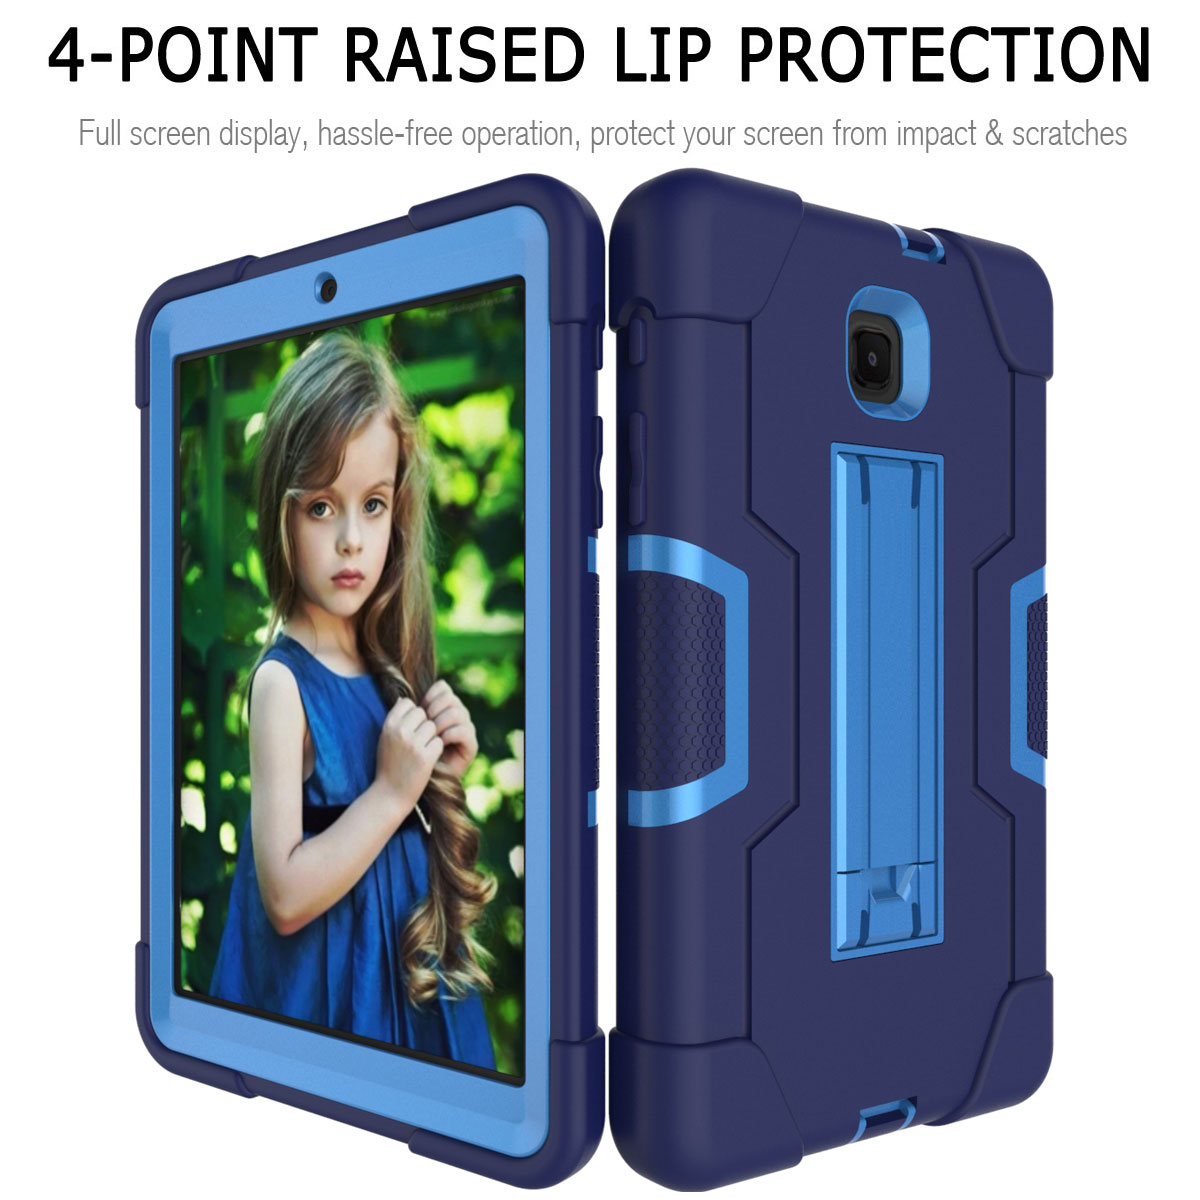 Hybrid-Shockproof-Impact-Case-Cover-For-Samsung-Galaxy-Tab-A-8-0-2018-SM-T387 thumbnail 30